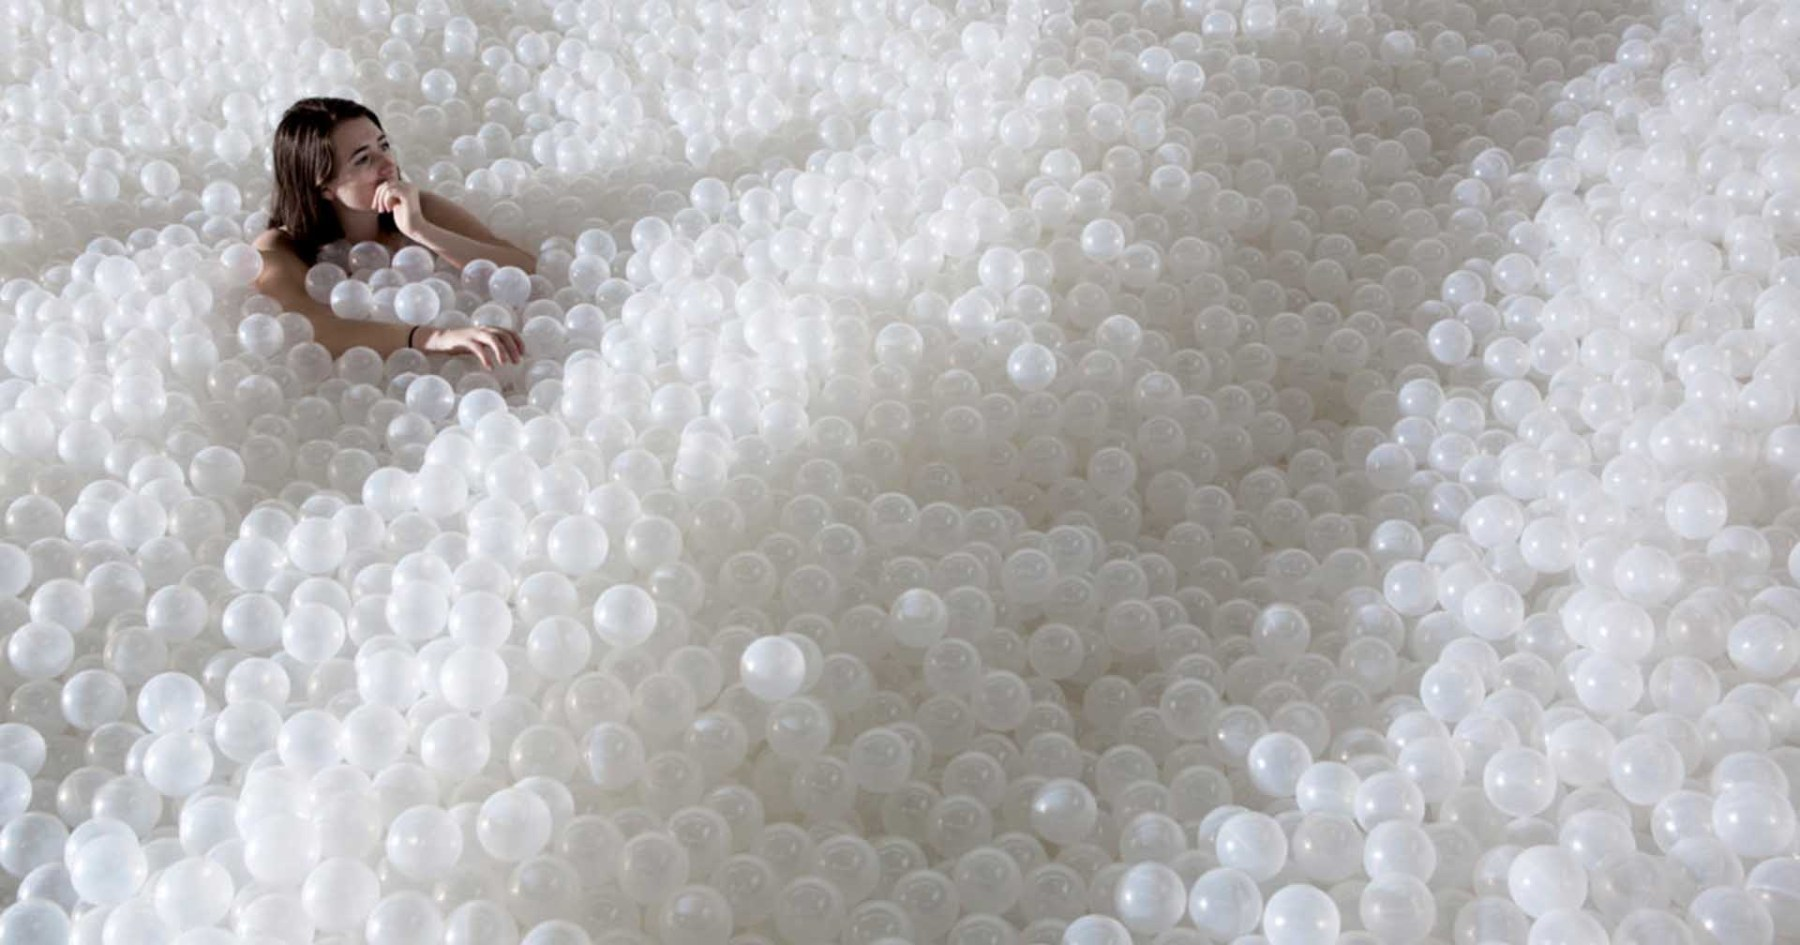 This Date Plan Involves a Million-Ball Ball Pit, and Other Jovial Things